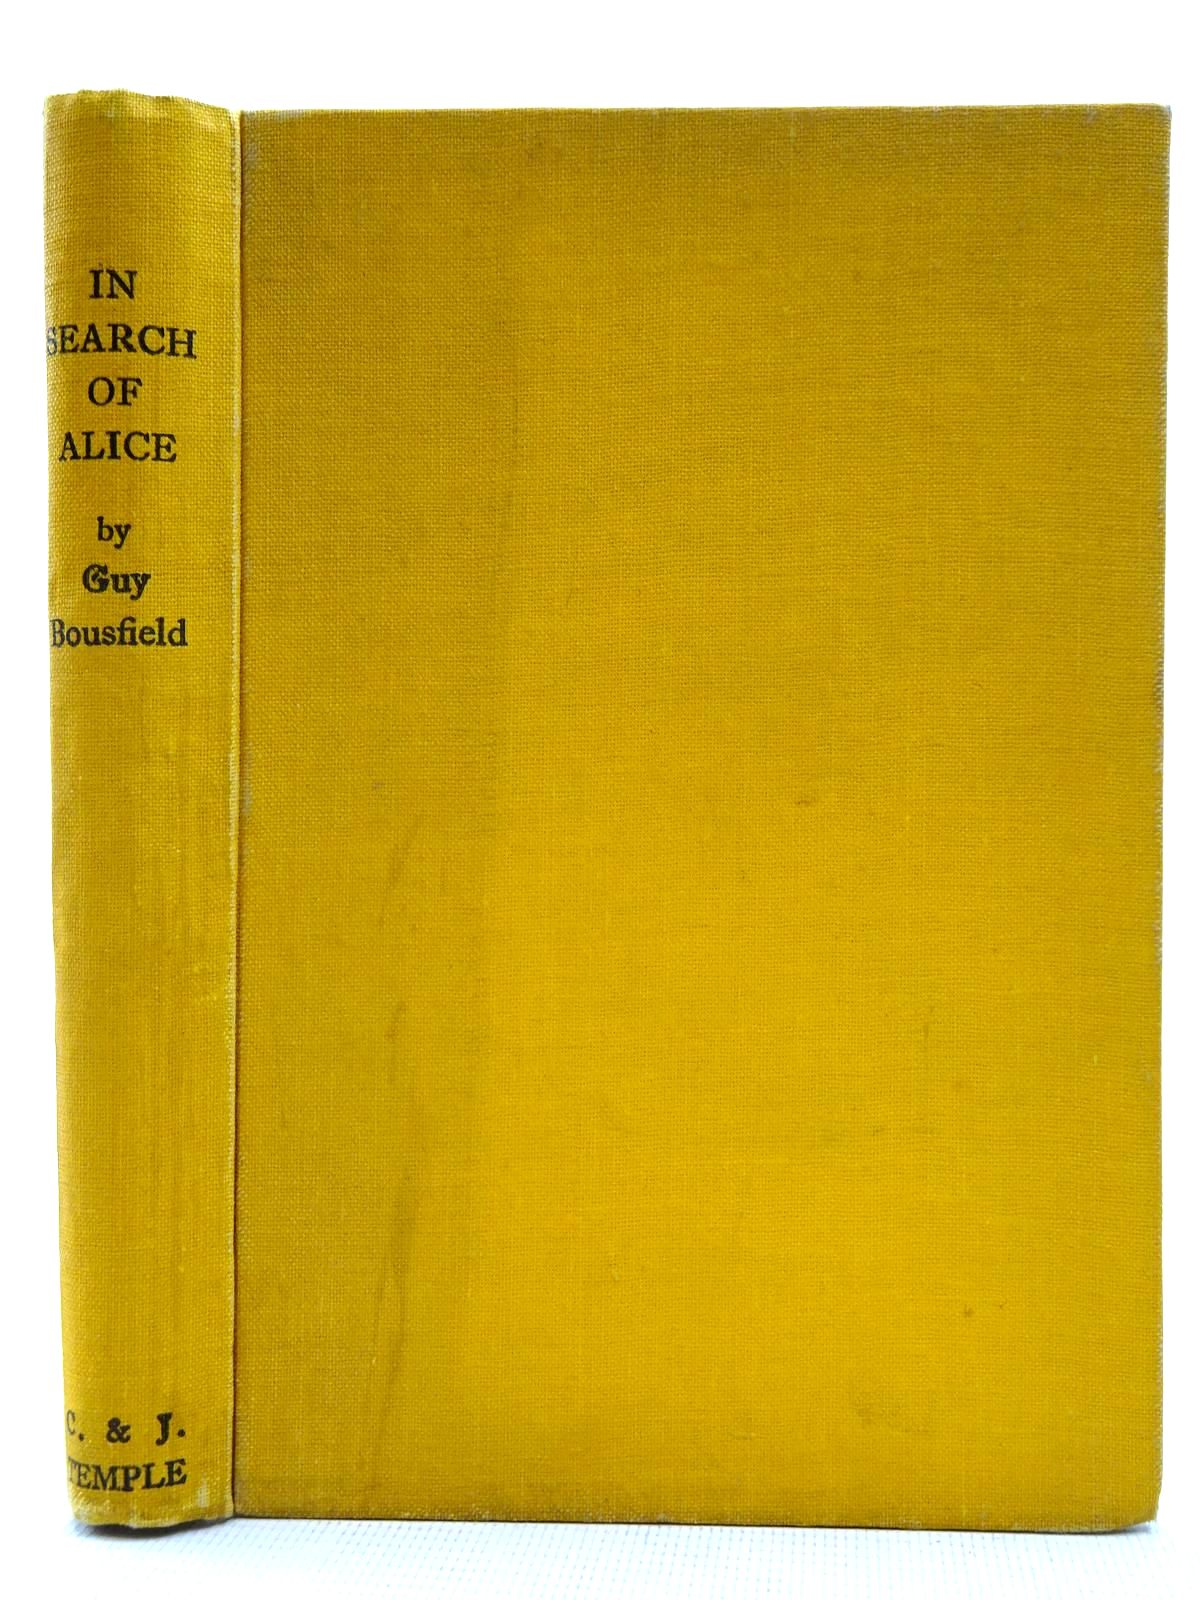 Photo of IN SEARCH OF ALICE written by Bousfield, Guy illustrated by Biro, B. published by C. & J. Temple Ltd. (STOCK CODE: 2128592)  for sale by Stella & Rose's Books